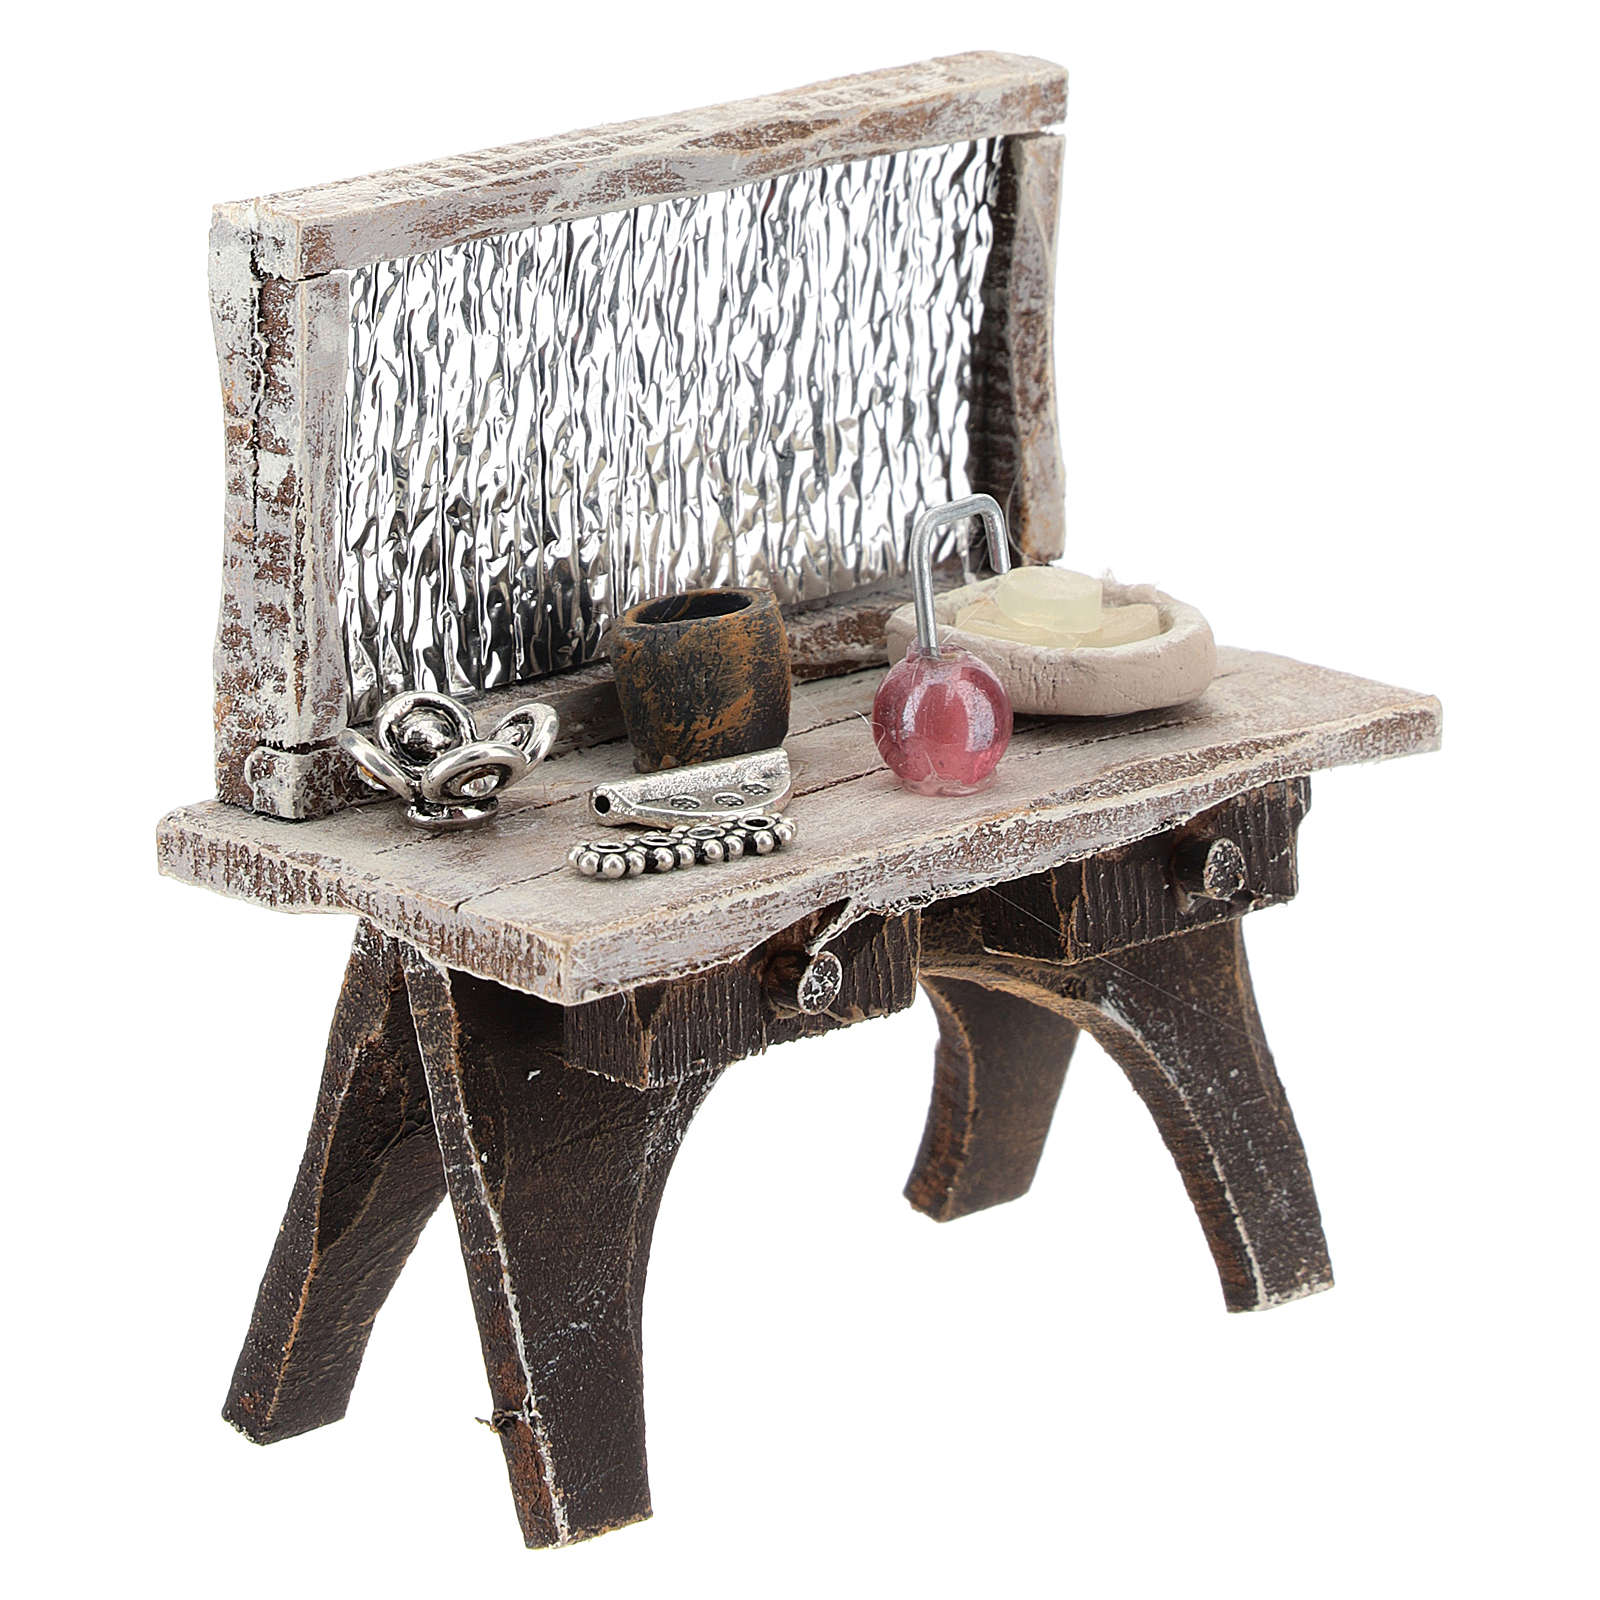 Barber desk for 10 cm Nativity scene 4